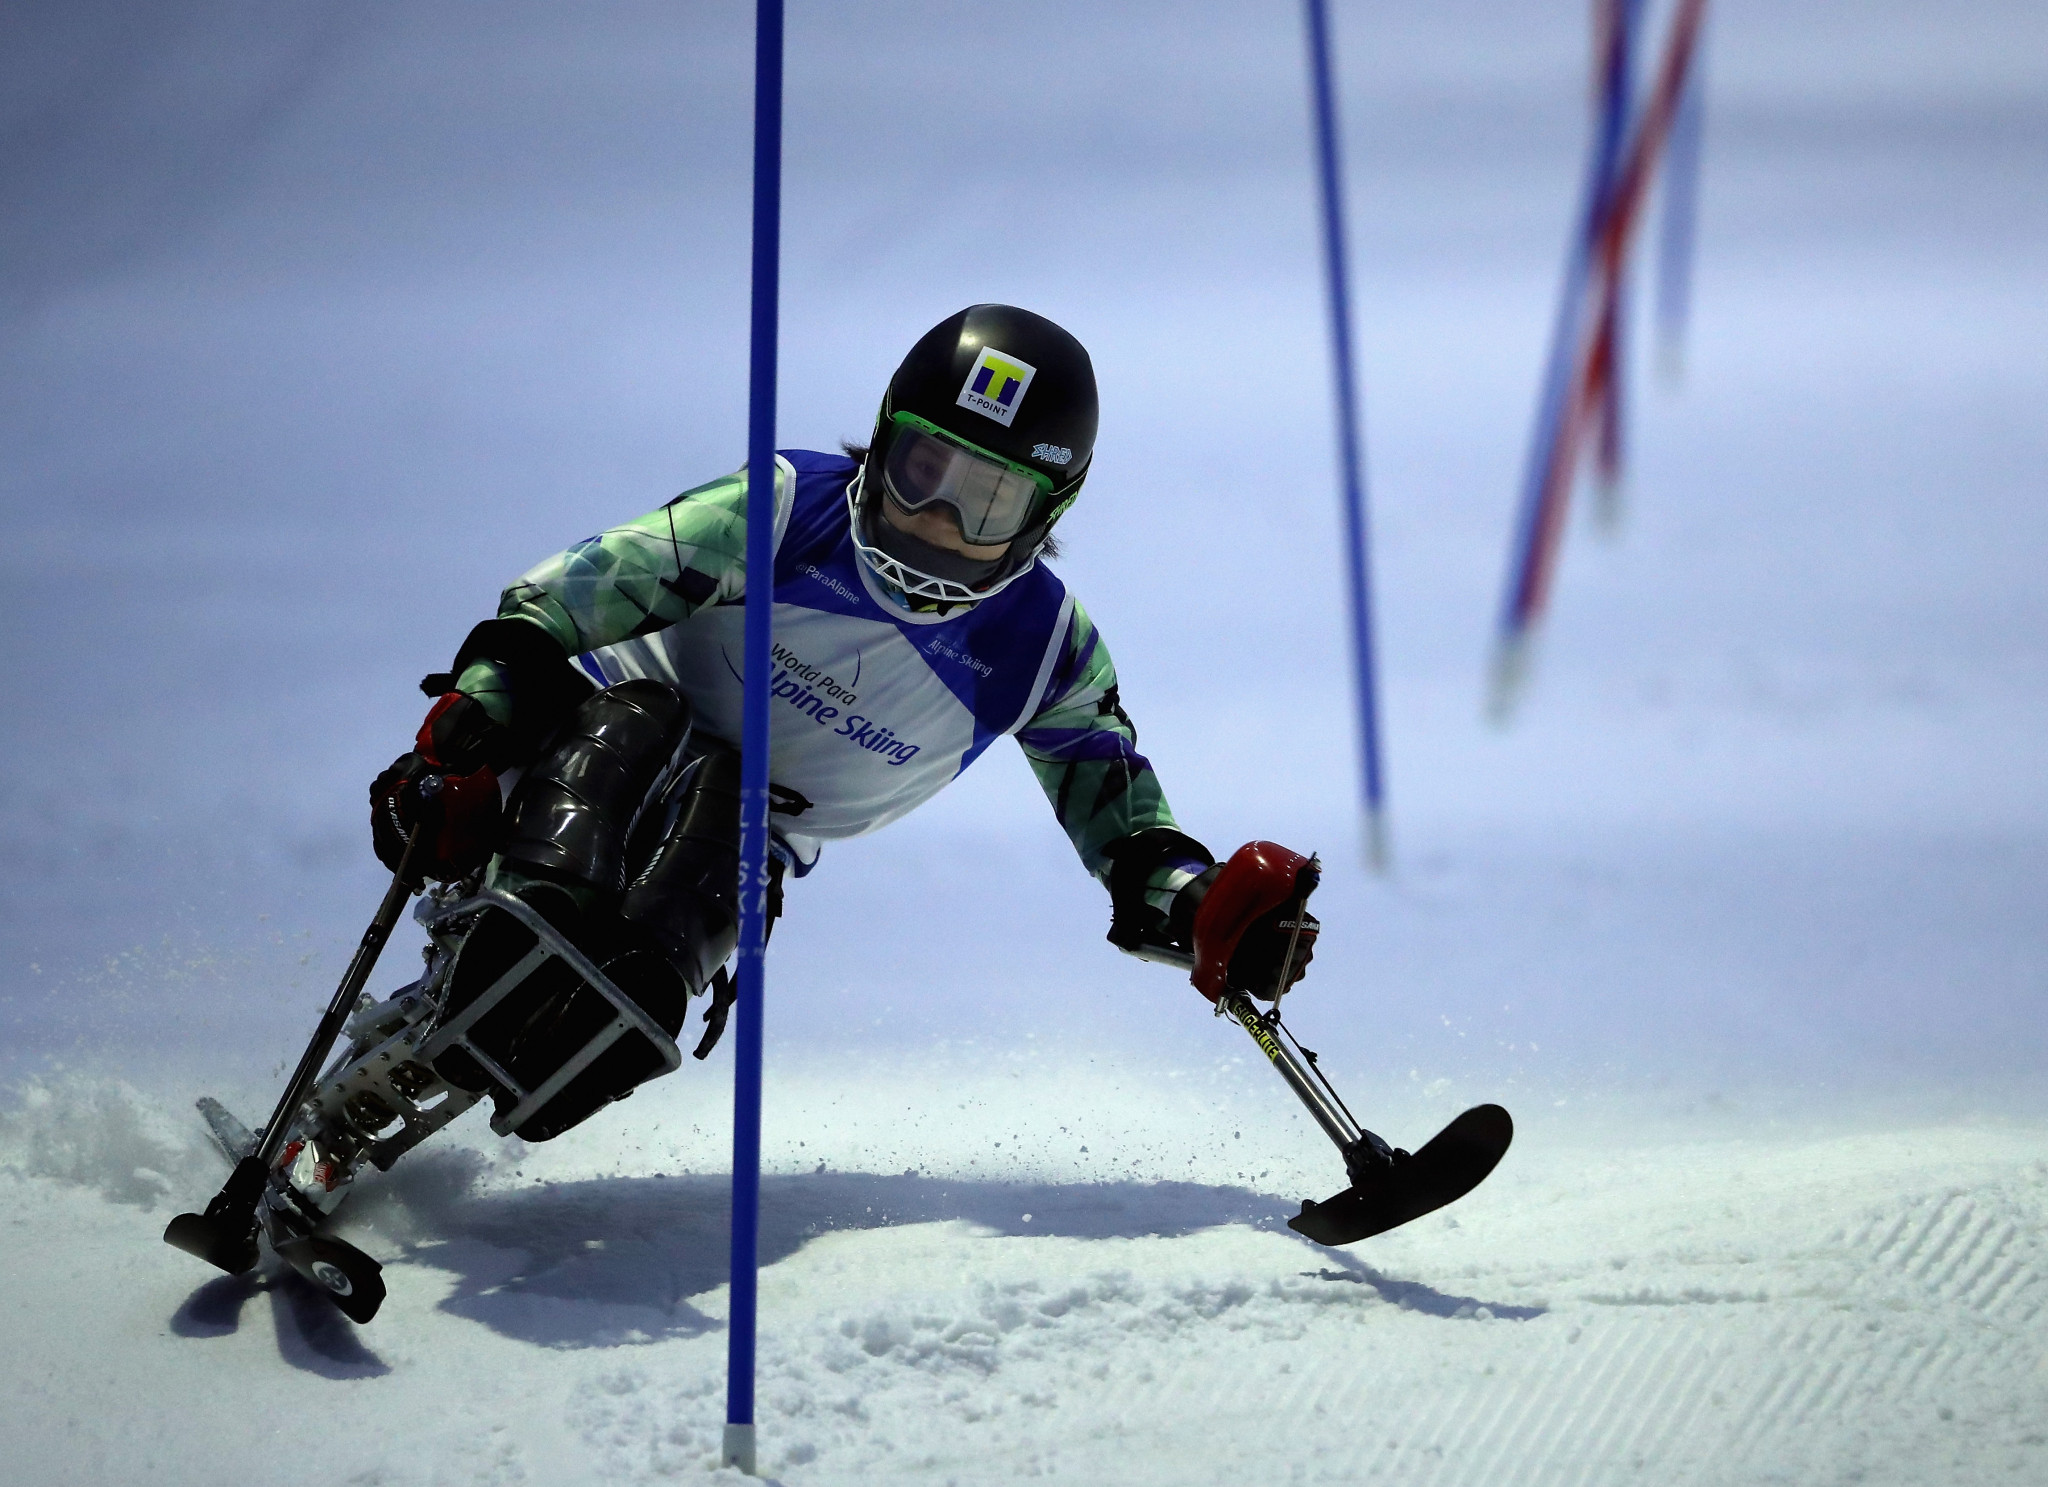 TechnoAlpin's cooperation with World Para Snow Sports extends to Para Alpine skiing among other sports ©Getty Images